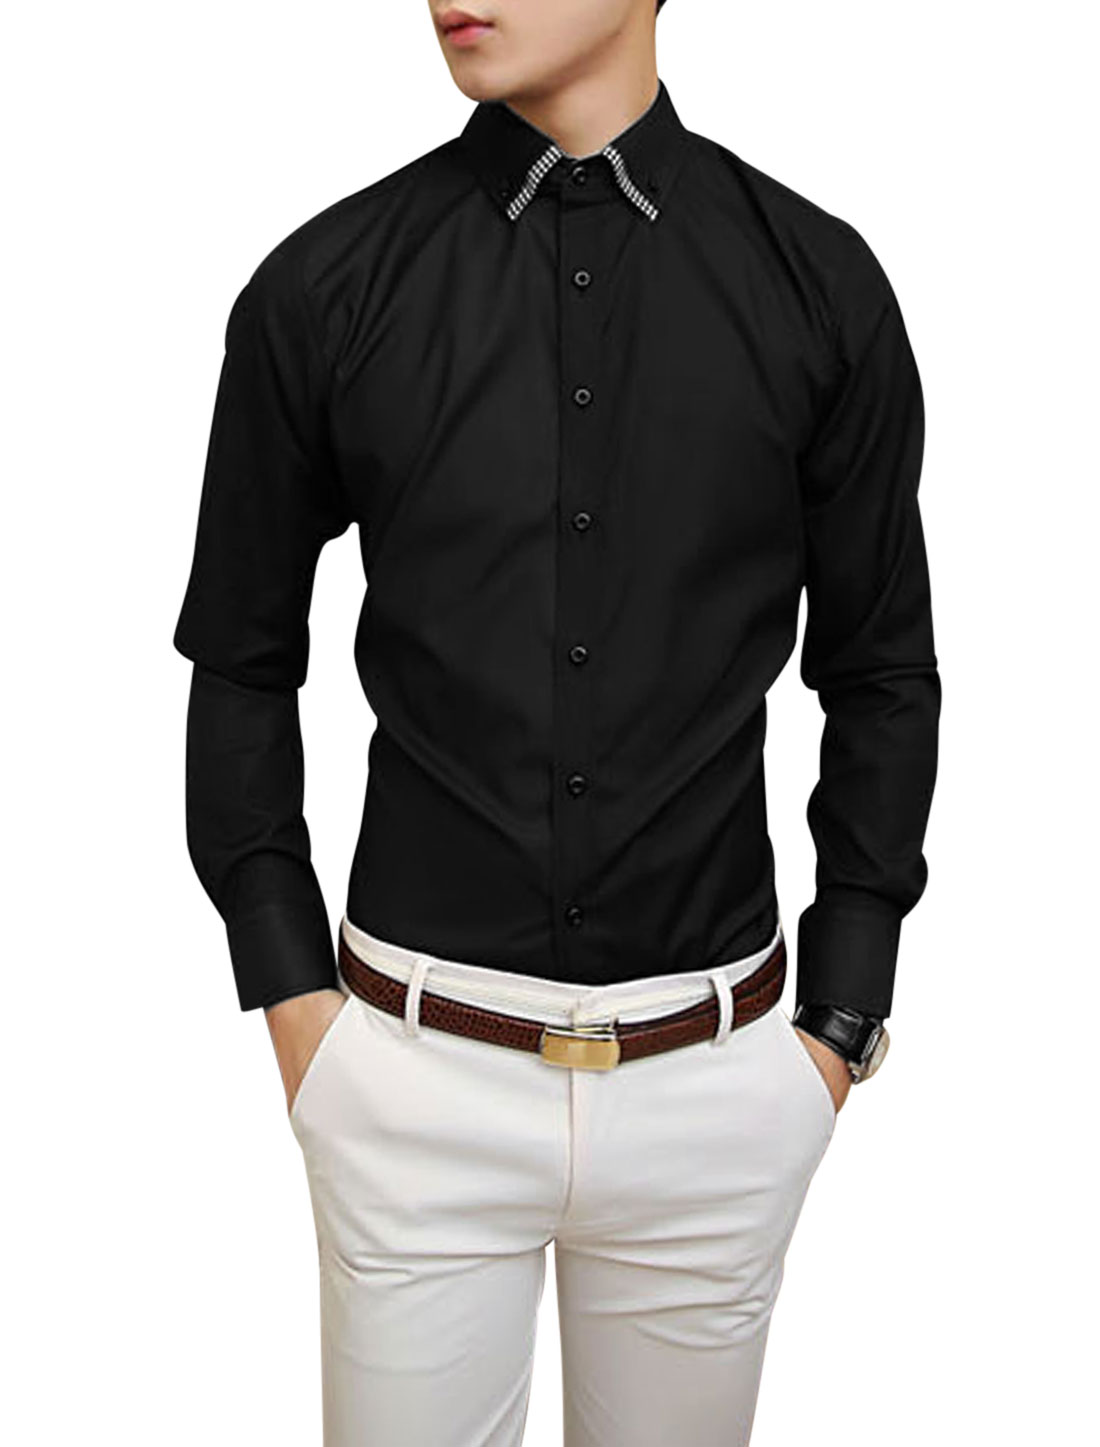 Man Fashion Design Full Sleeve Button Down Black Shirt M